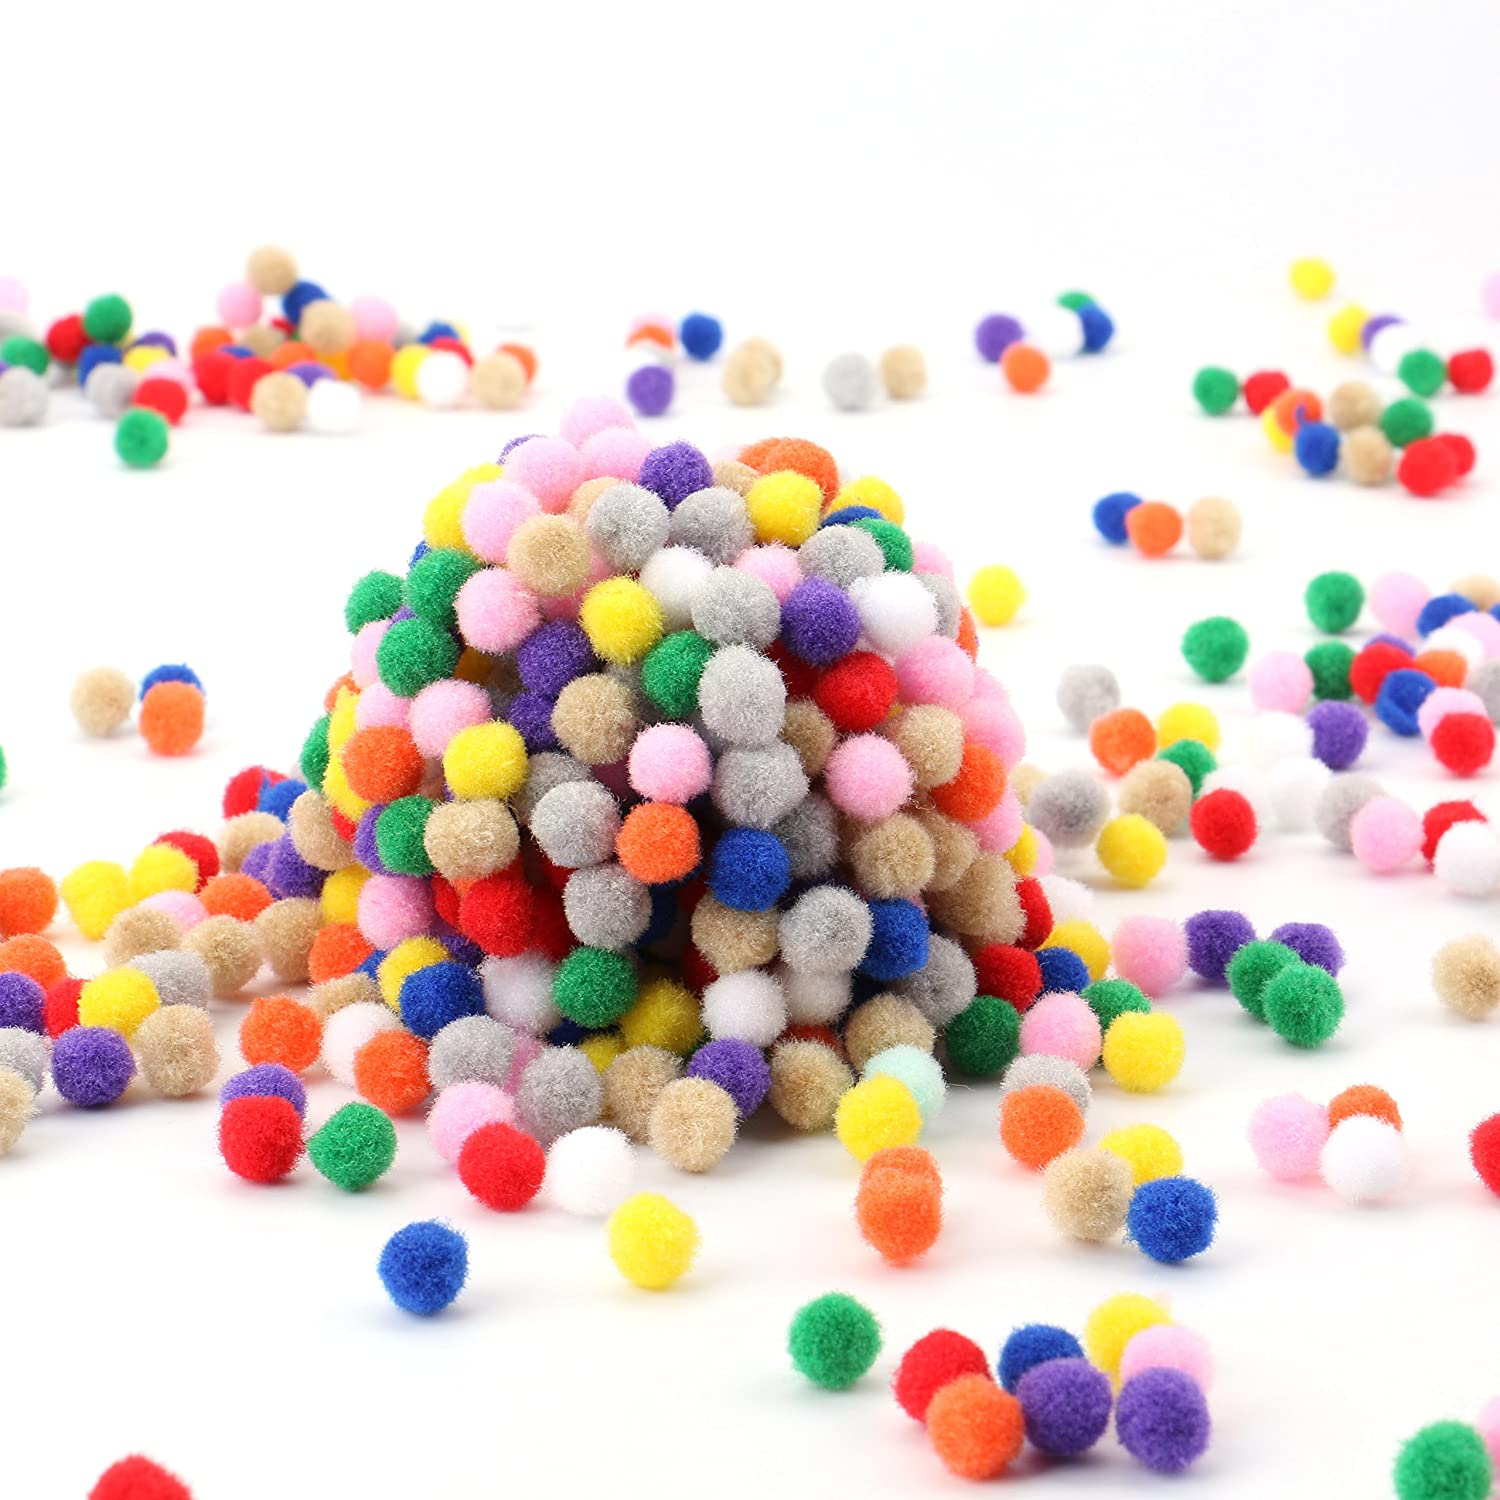 Tebery 2000 Pcs 1cm Multicolor Arts and Crafts Fuzzy Pom Poms Balls Assorted Pom Poms for DIY Creative Crafts Decorations